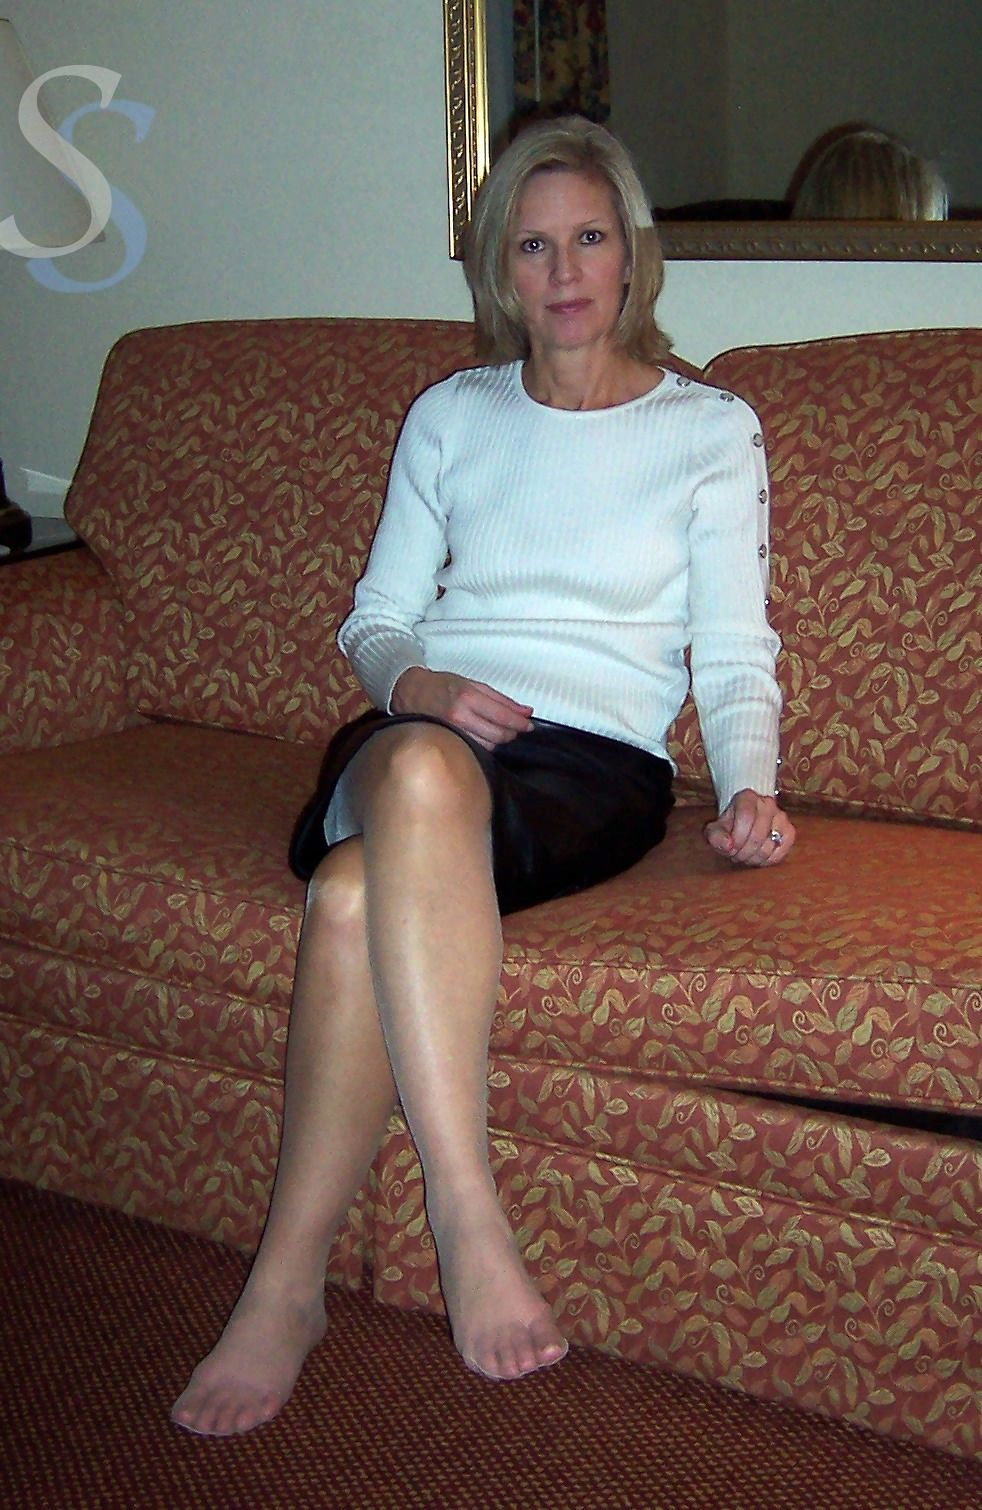 Candid blonde milf sexy feet and painted toes in flip flops 8